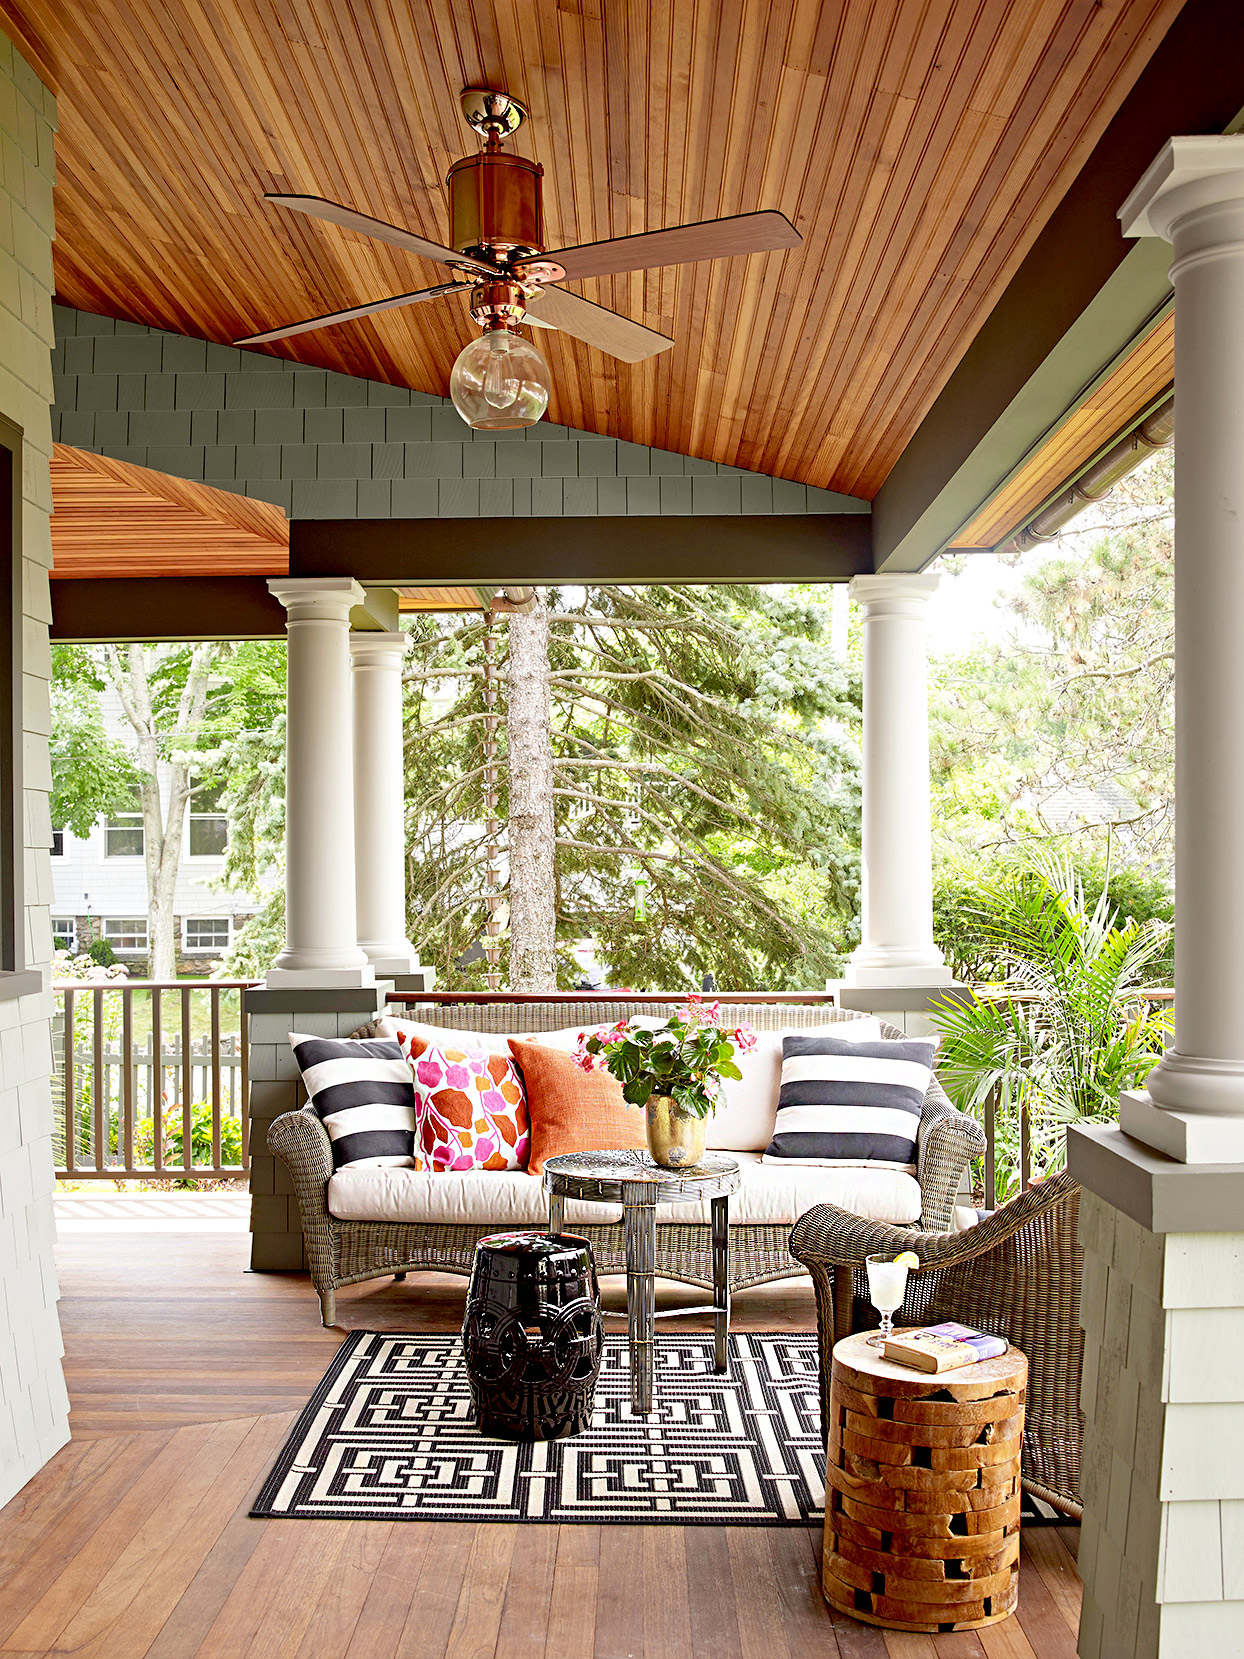 Porch with wicker furniture, pillows